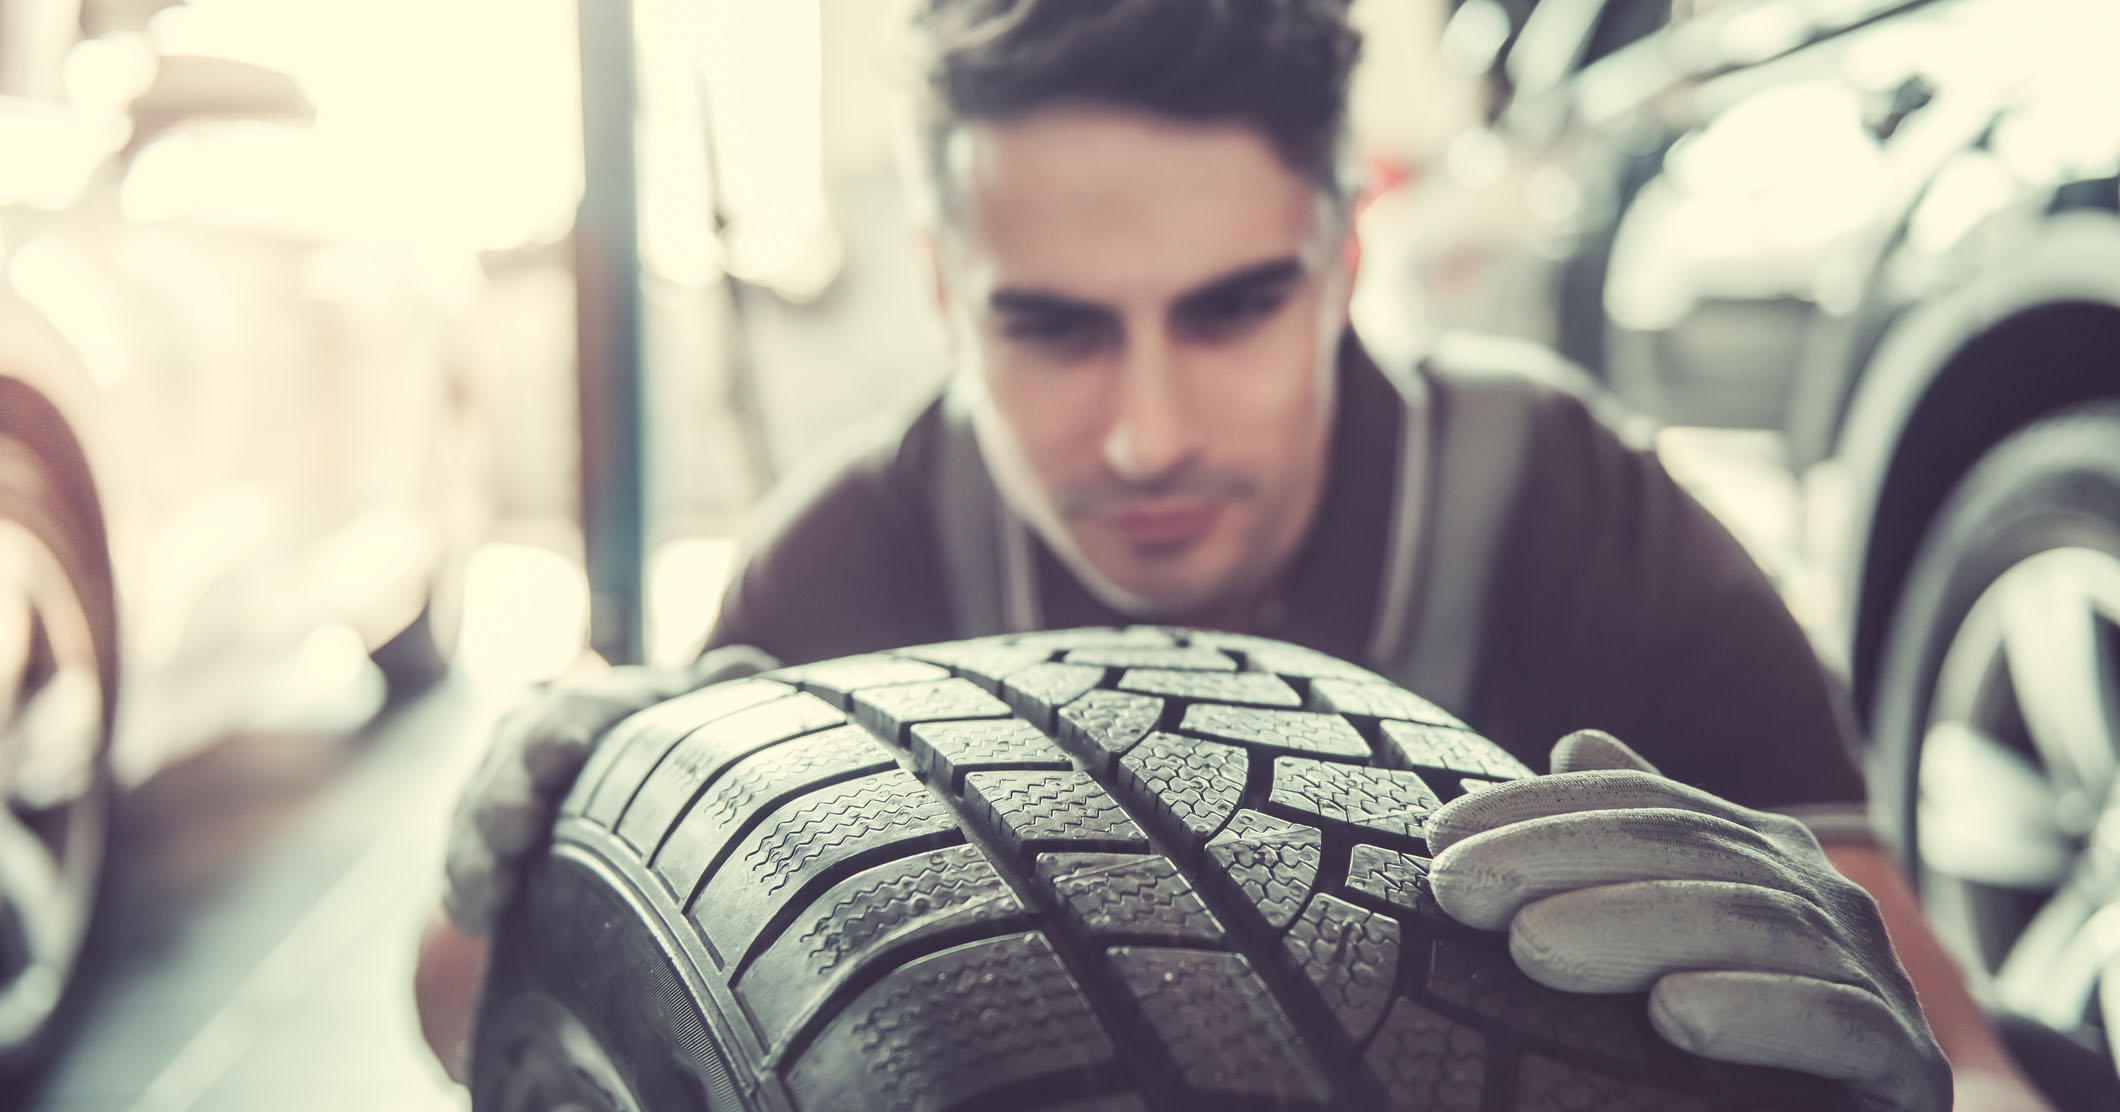 Auto Repair Shops and the Important Trust Factor